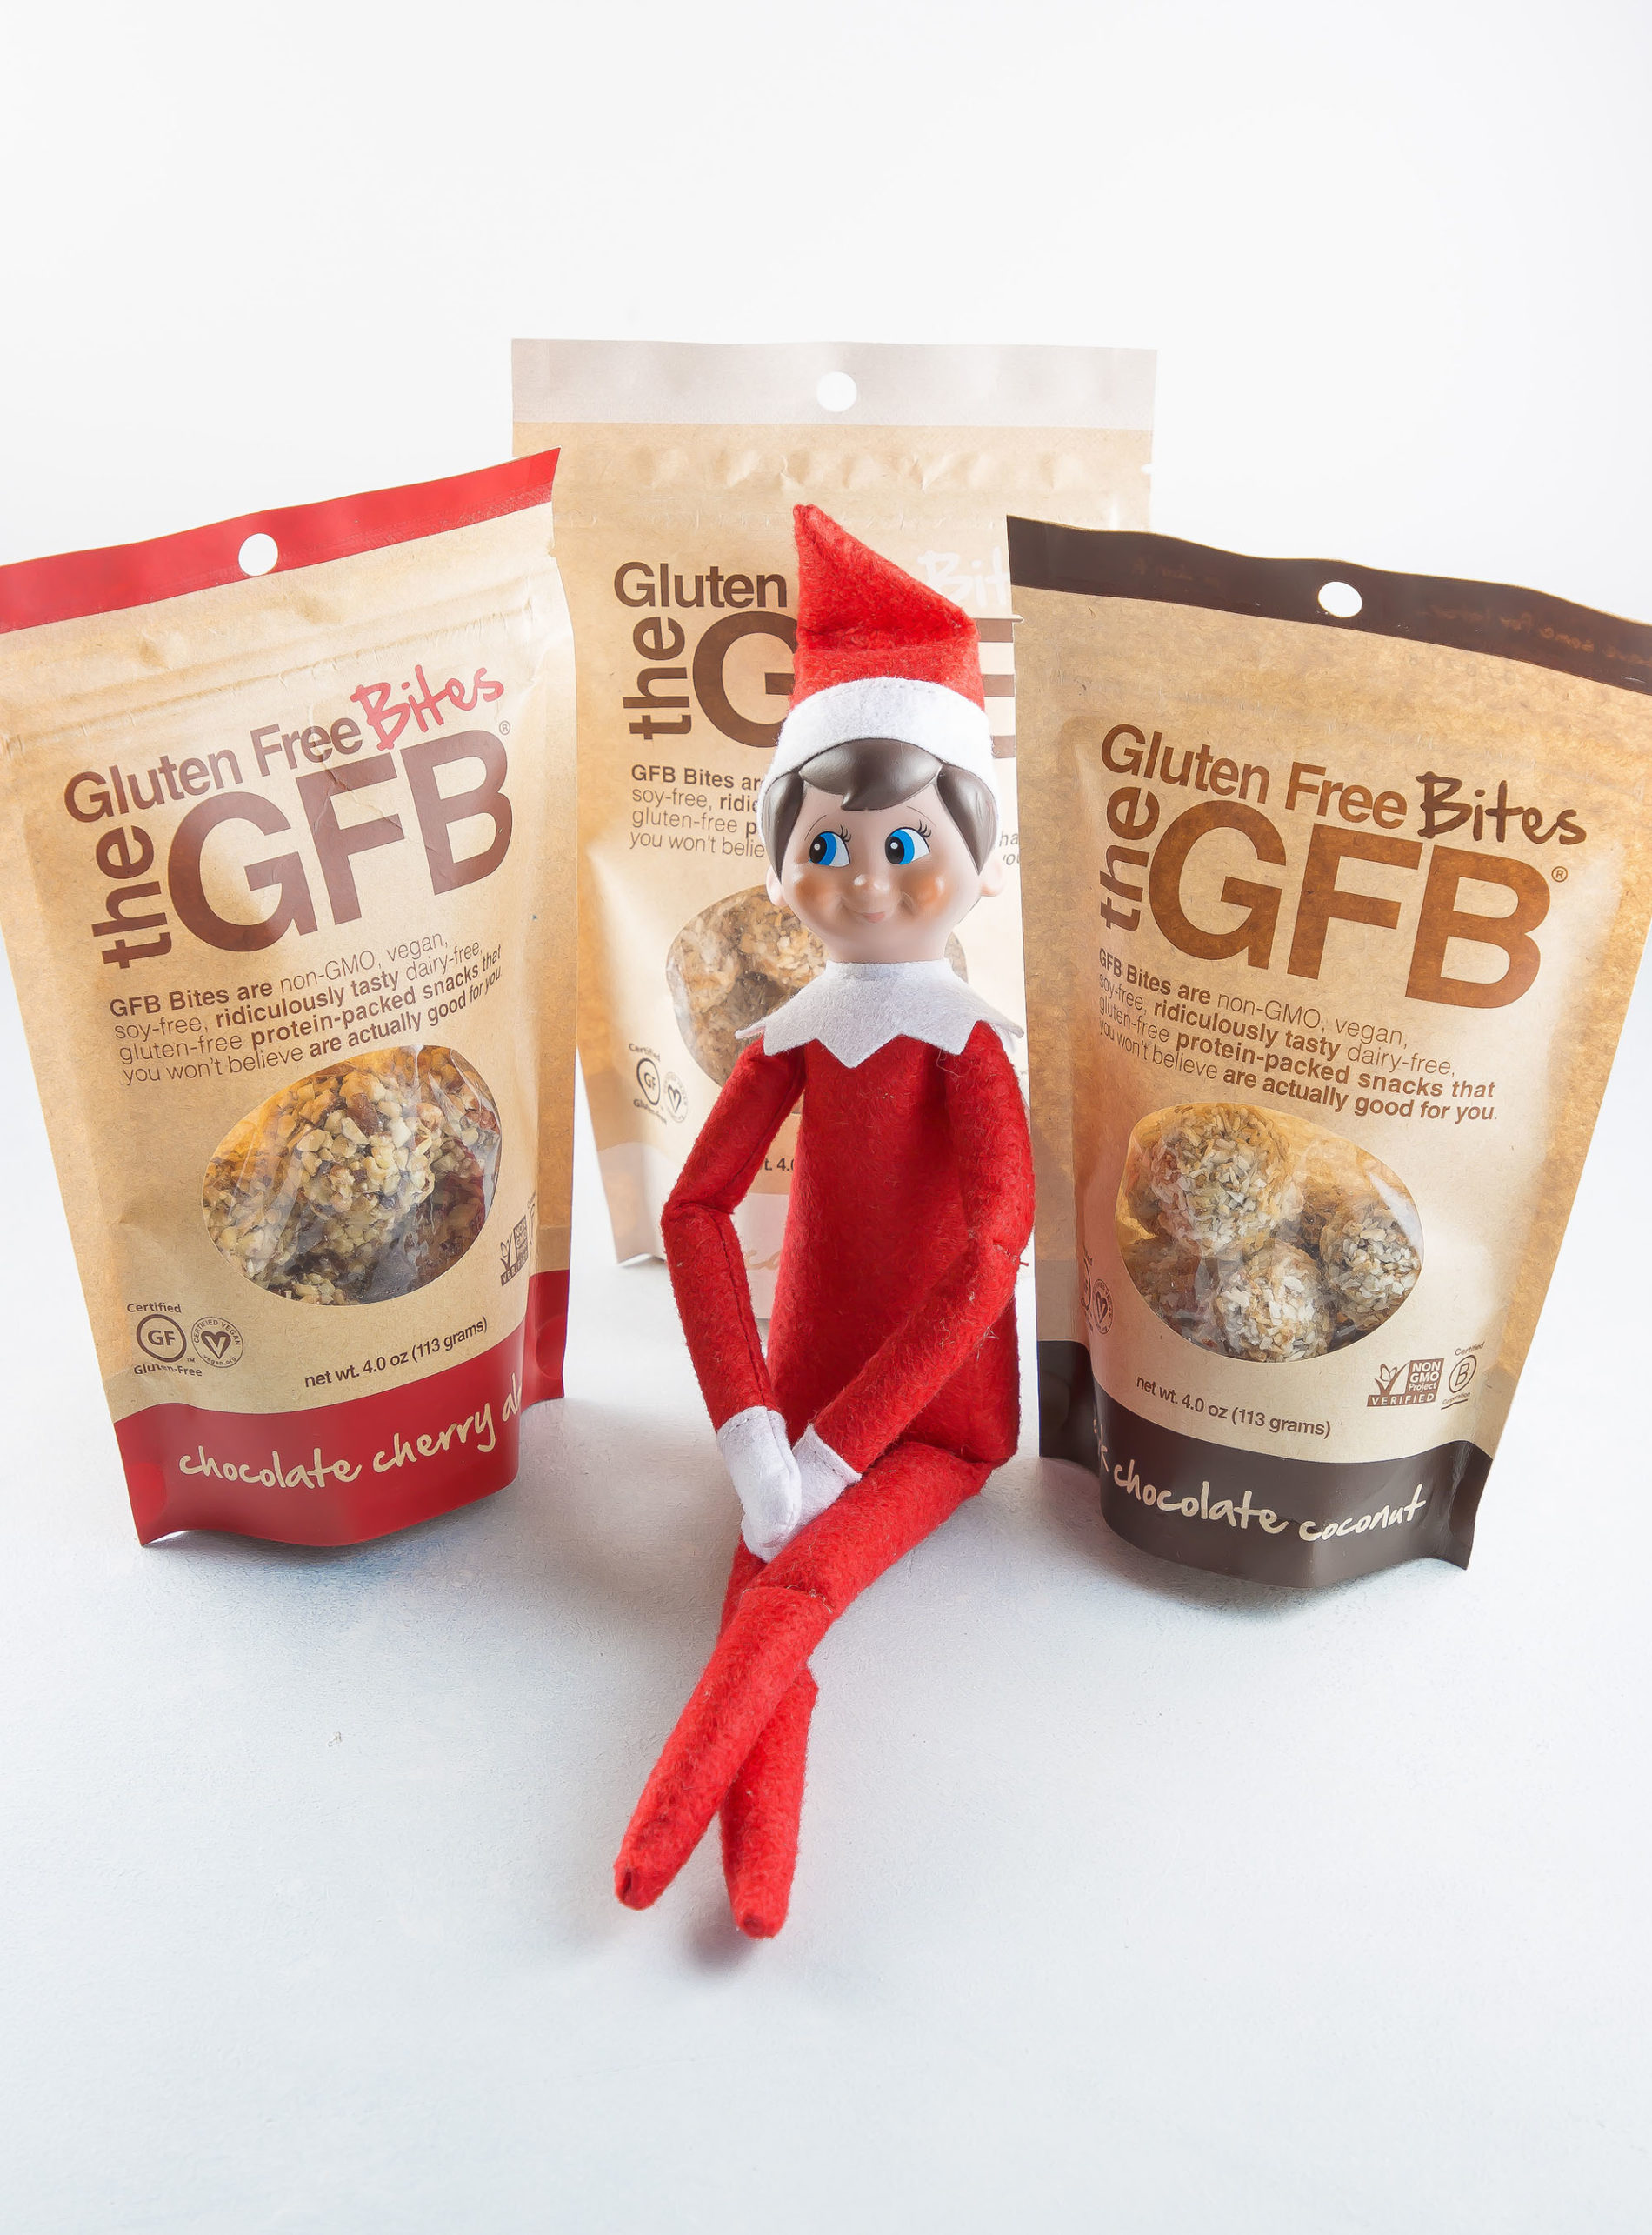 The GFB Product Review